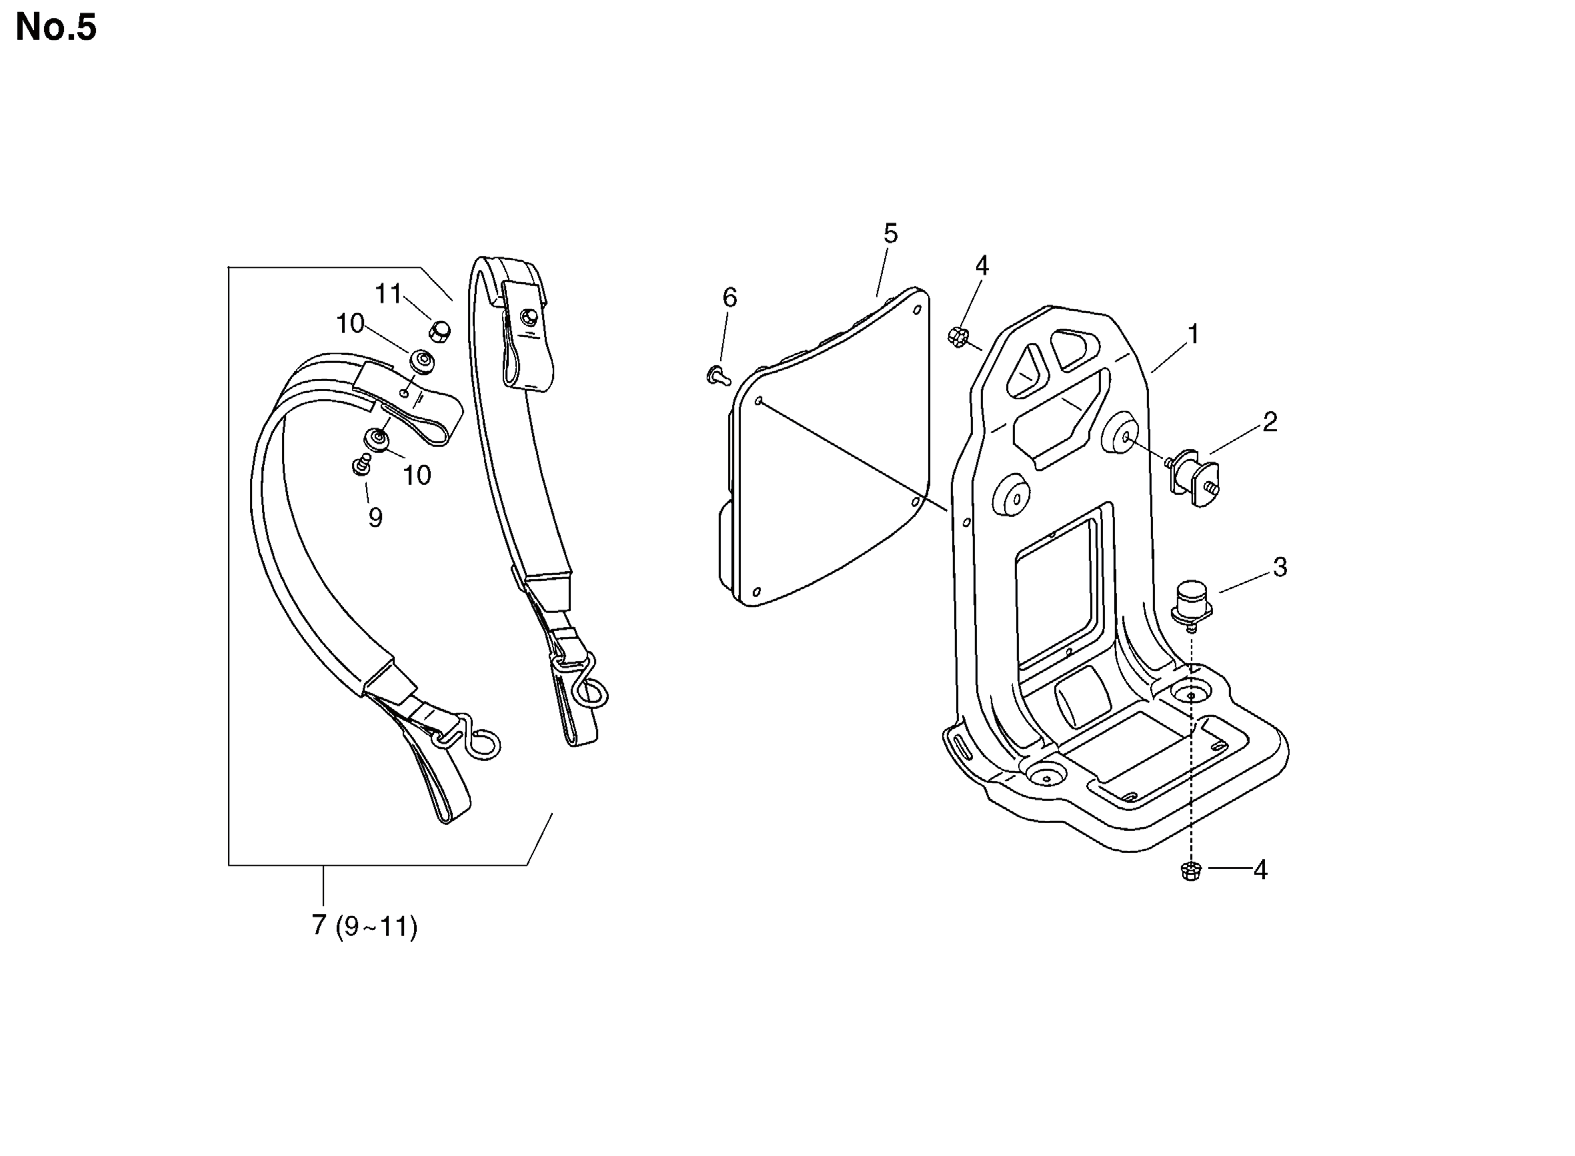 Group:Duster/Mist Blowers Model:DM-4610(SrNr 004334 and before) Section:Harness Group:Duster/Mist Blowers Model:DM-4610(SrNr 004334 and before) Section:Control Lever 5 890348-05060 1 LABEL, SPEED 6